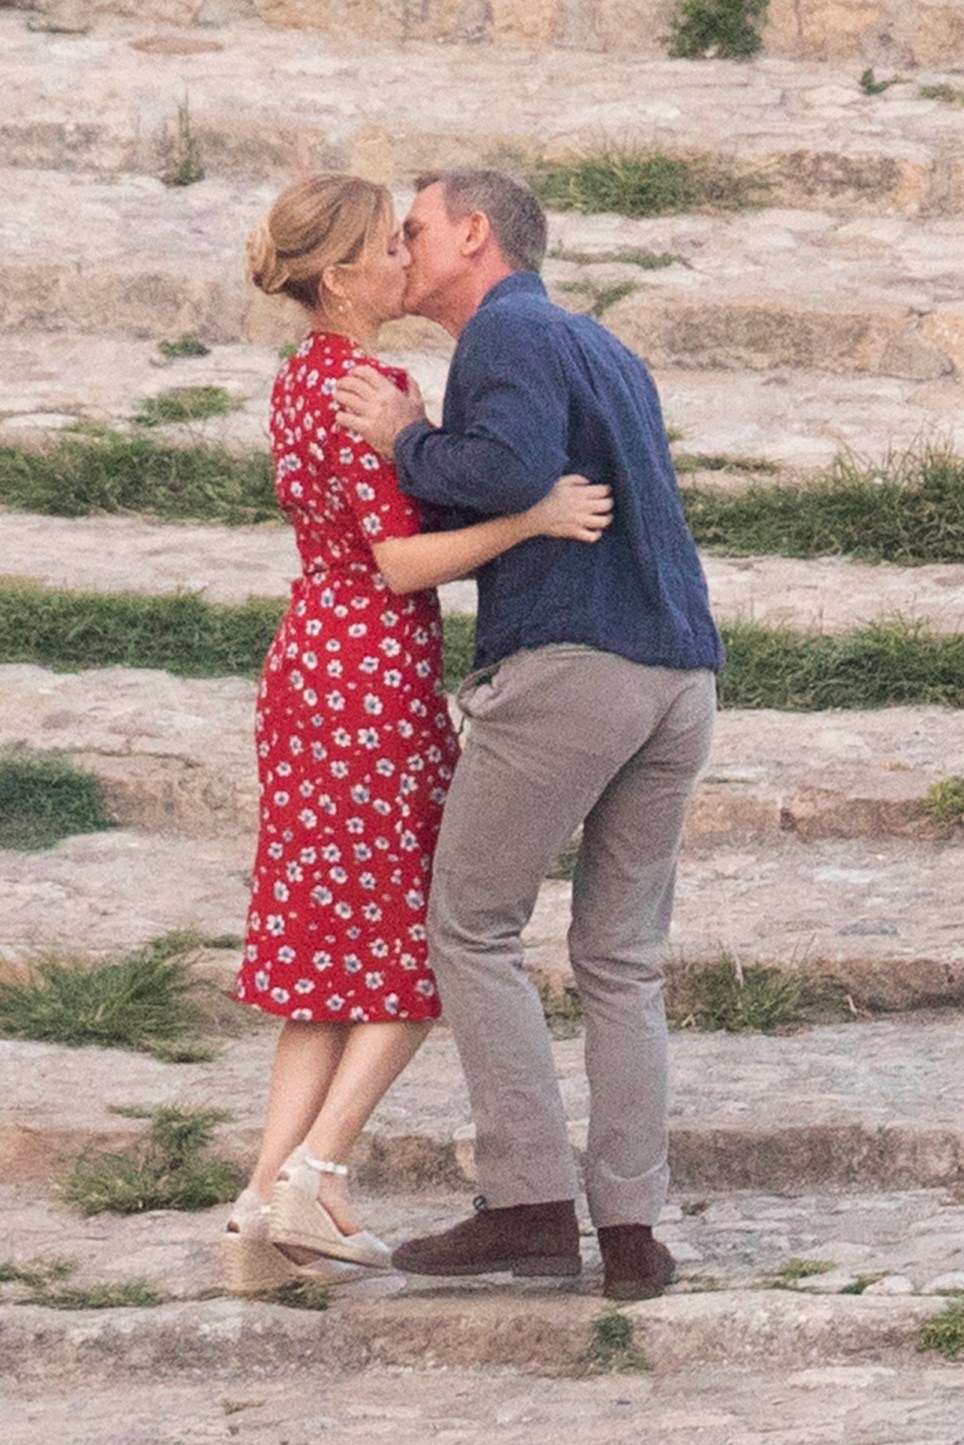 Daniel Craig shares a kiss and embrace with French co-star Lea Seydoux